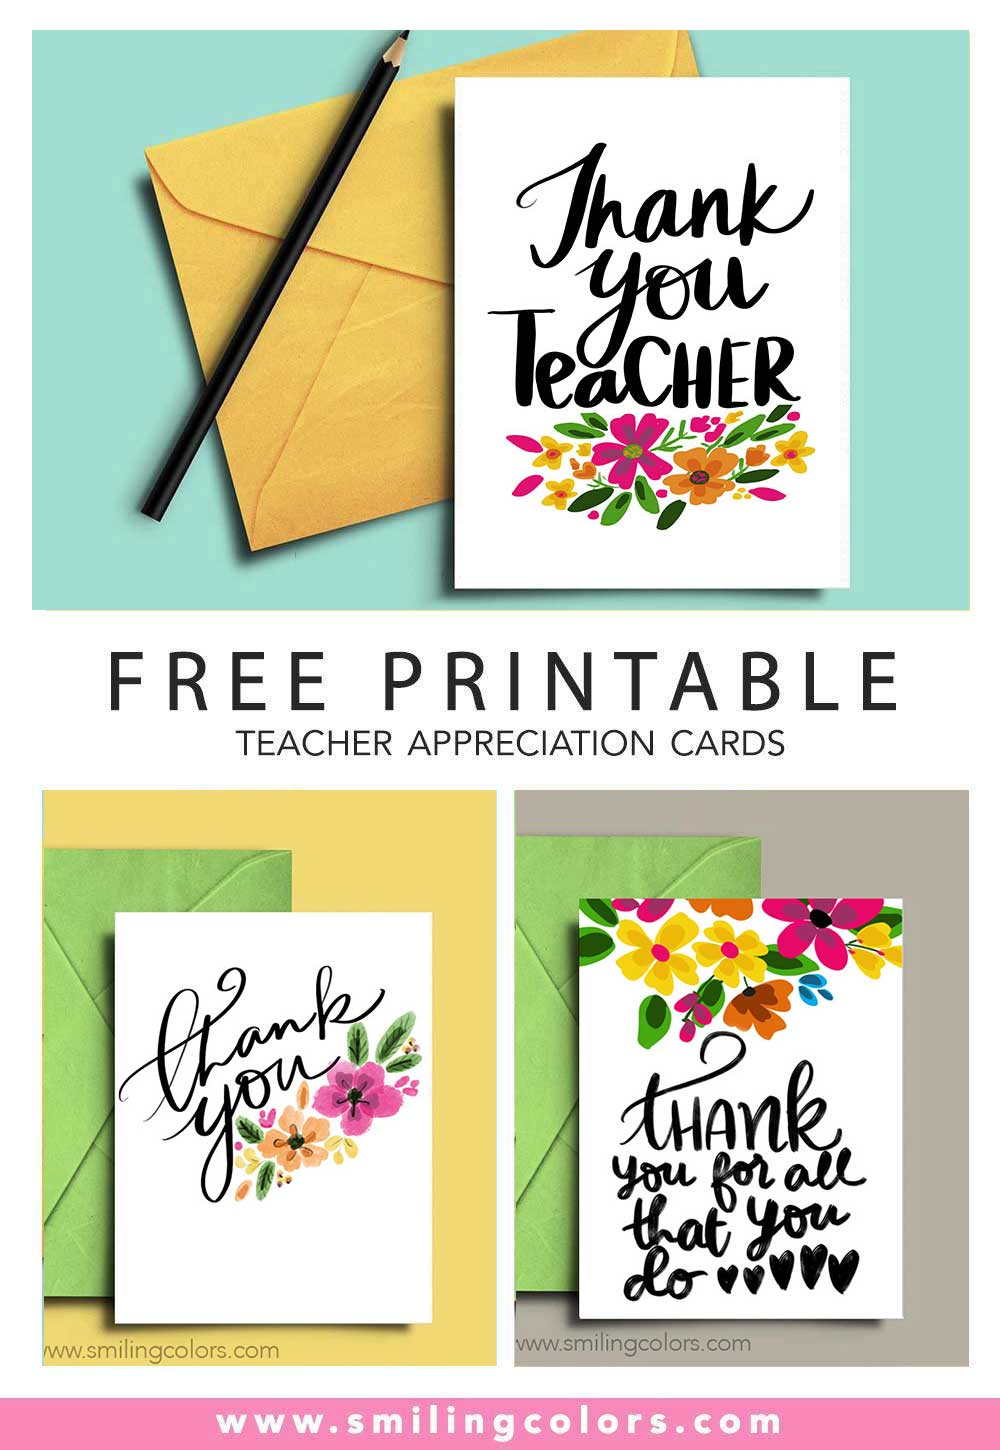 image regarding Printable Thank You Cards for Teacher titled Thank on your own instructor: A mounted of Totally free printable take note playing cards